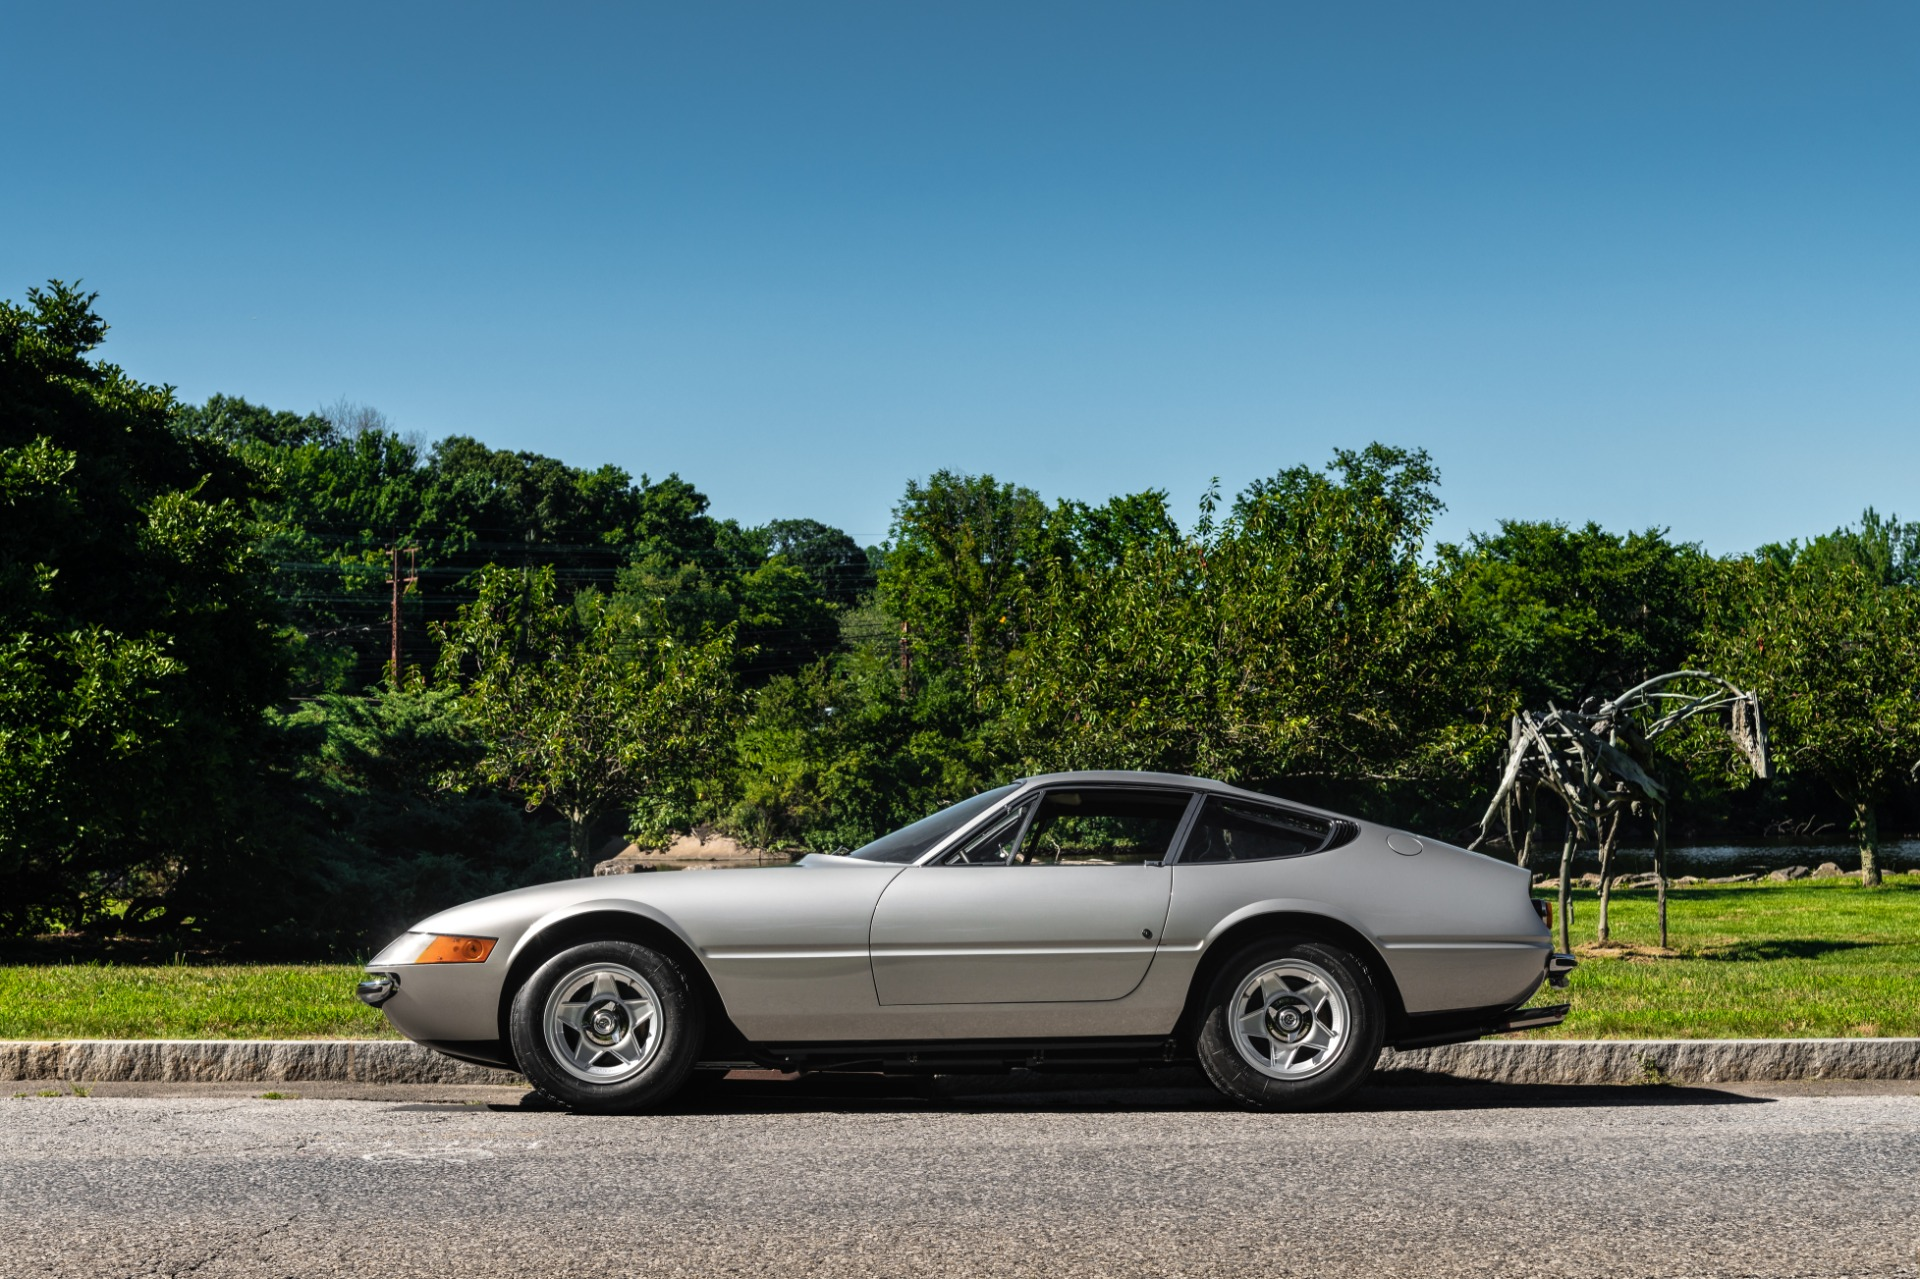 Used 1971 Ferrari 365 GTB/4 Daytona For Sale In Greenwich, CT 2146_p2